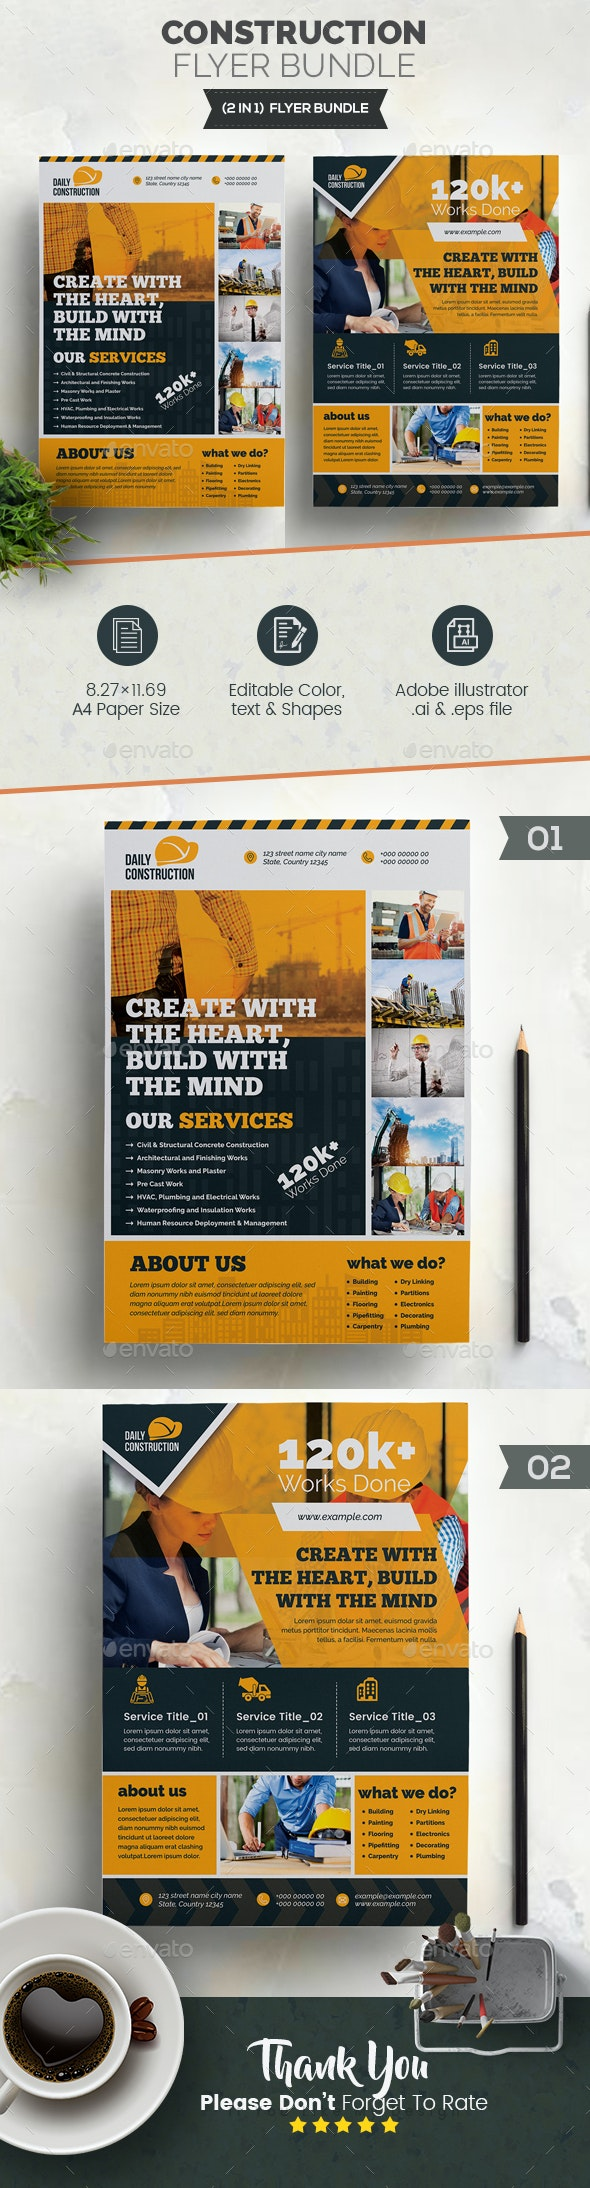 Construction Flyer Bundle 2 in 1 - Corporate Flyers